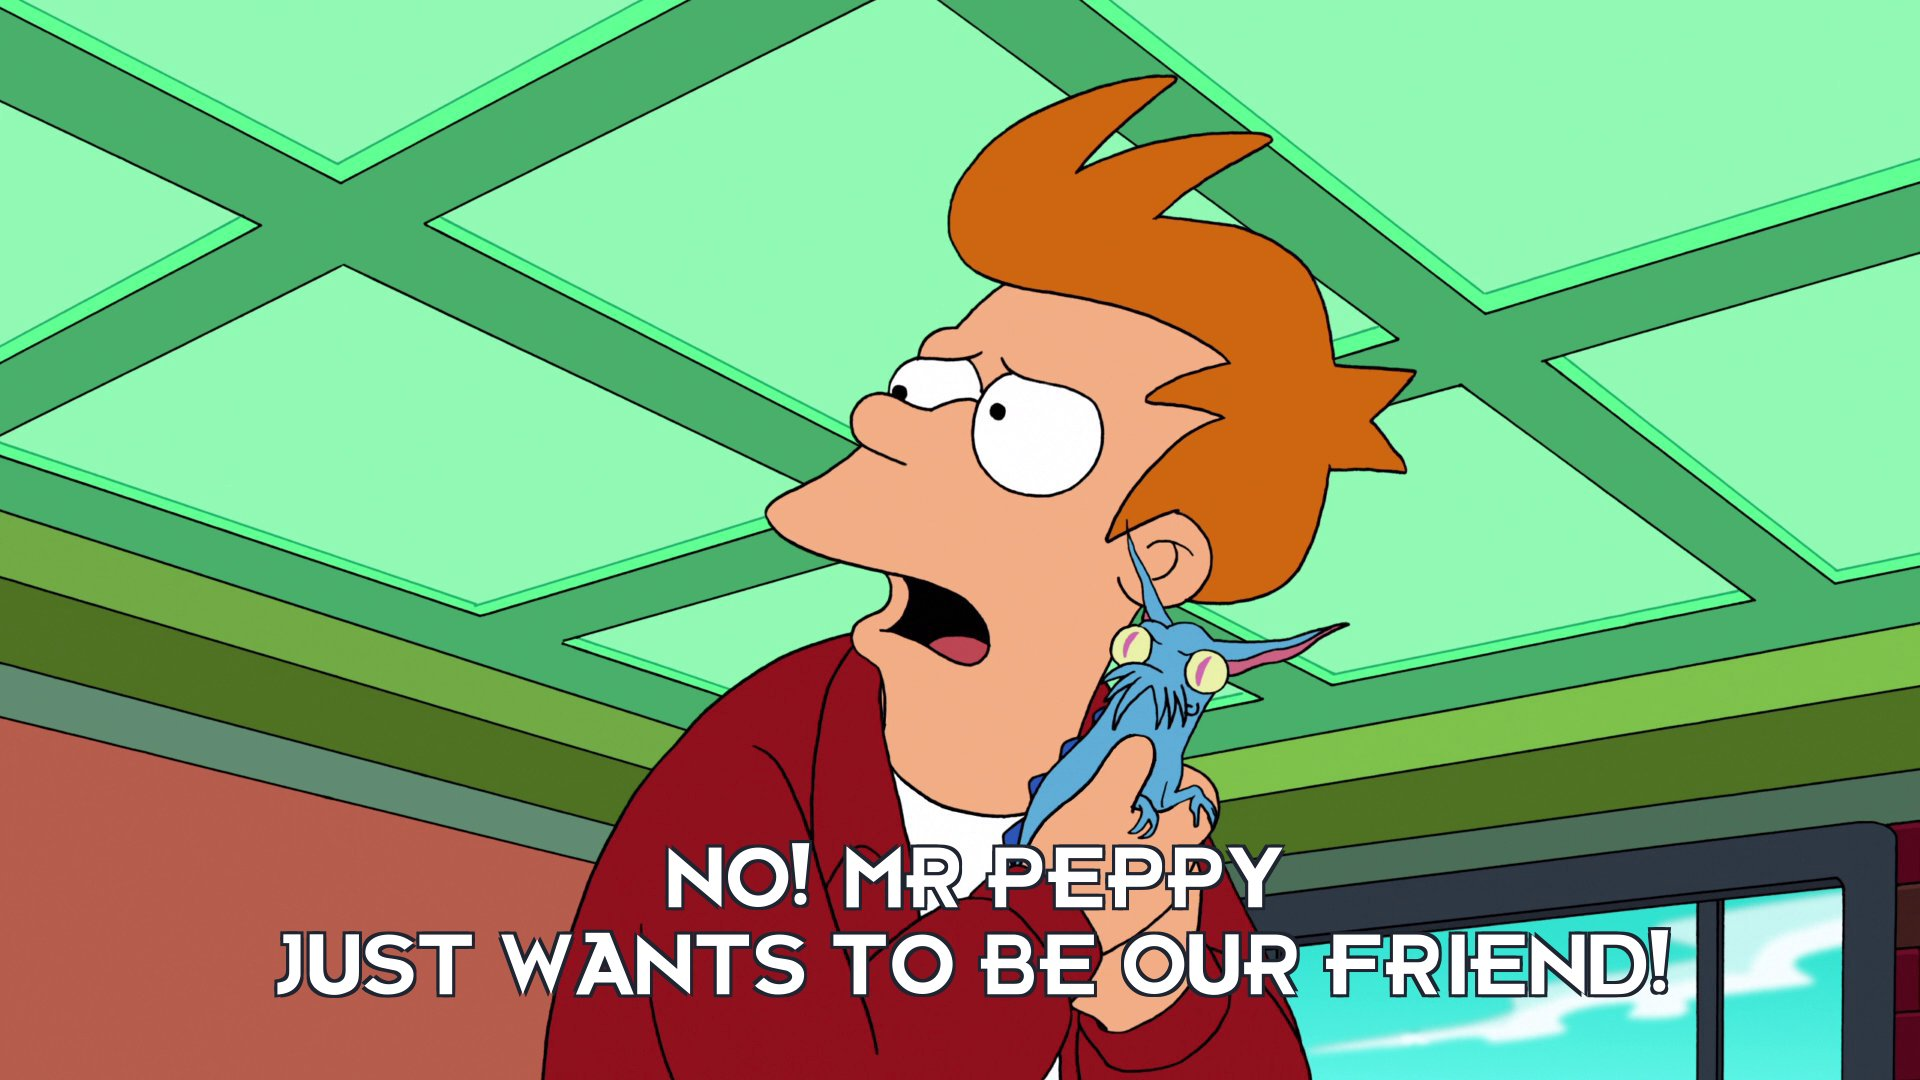 Philip J Fry: No! Mr Peppy just wants to be our friend!